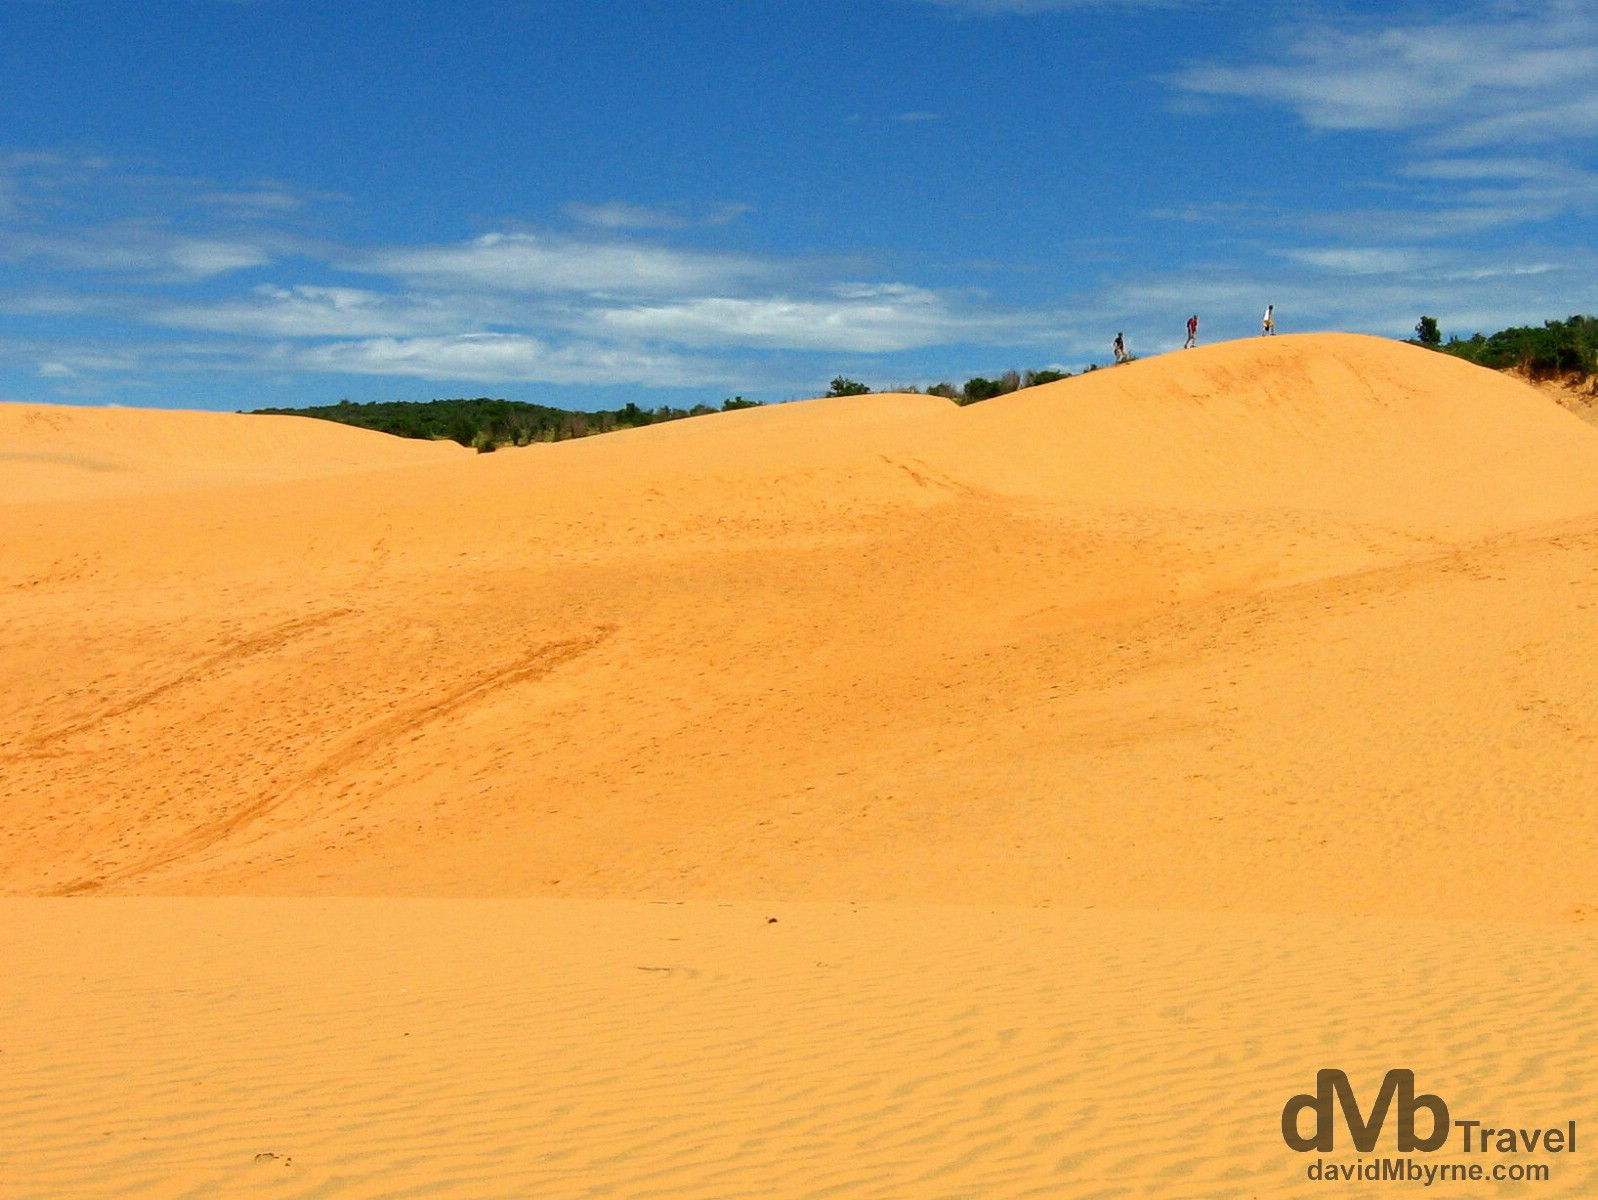 On a section of the massive sand dunes outside the village of Mui Ne, southern Vietnam. September 15th 2005.